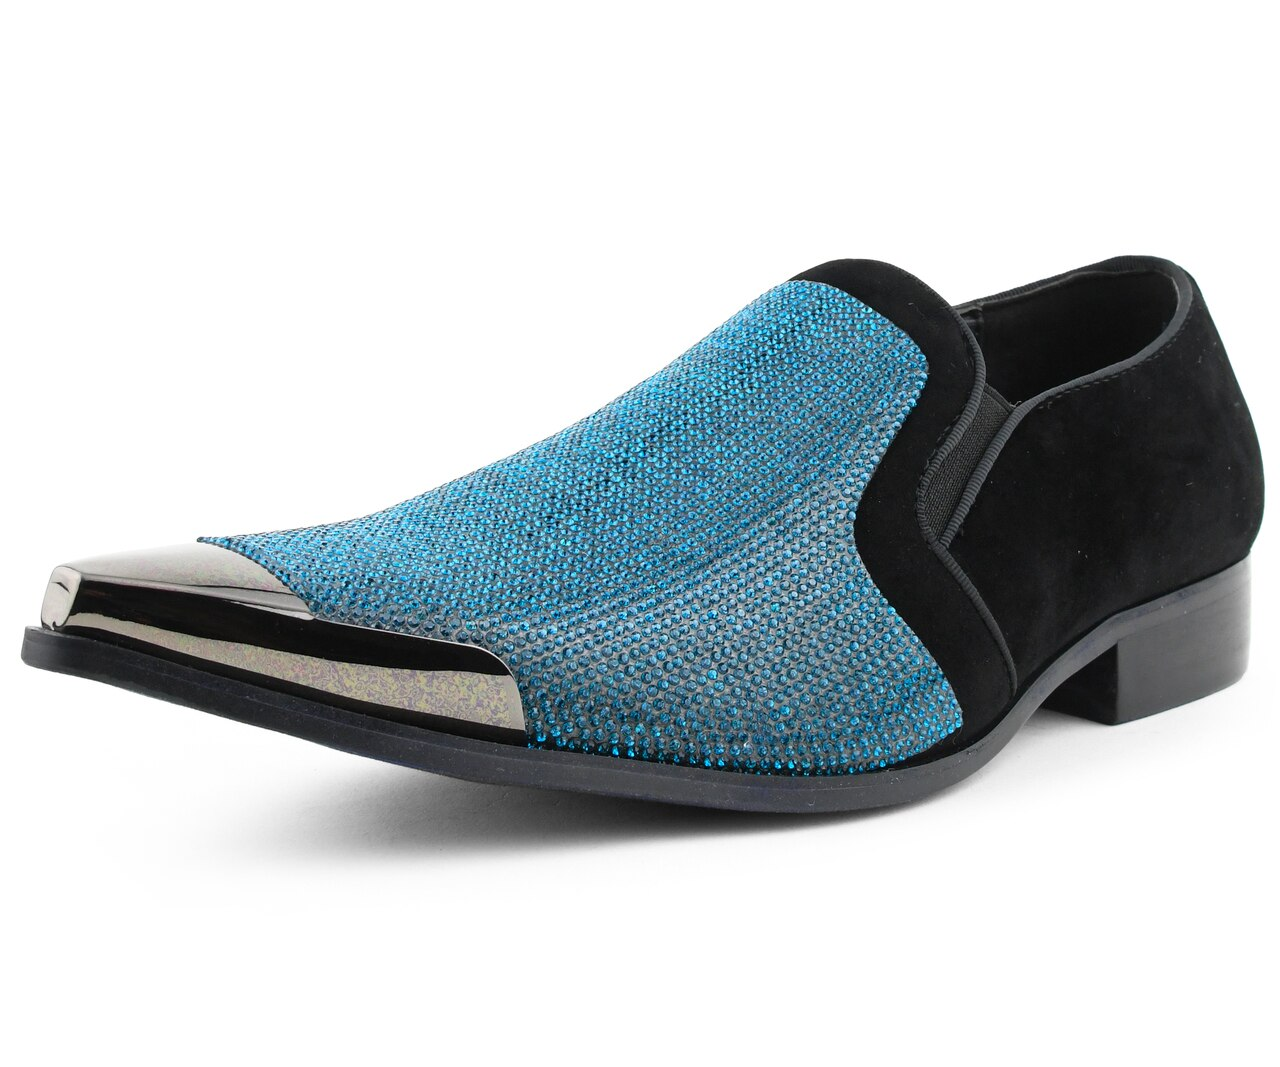 Men Dress Shoes-Dezzy-turquoise - Church Suits For Less